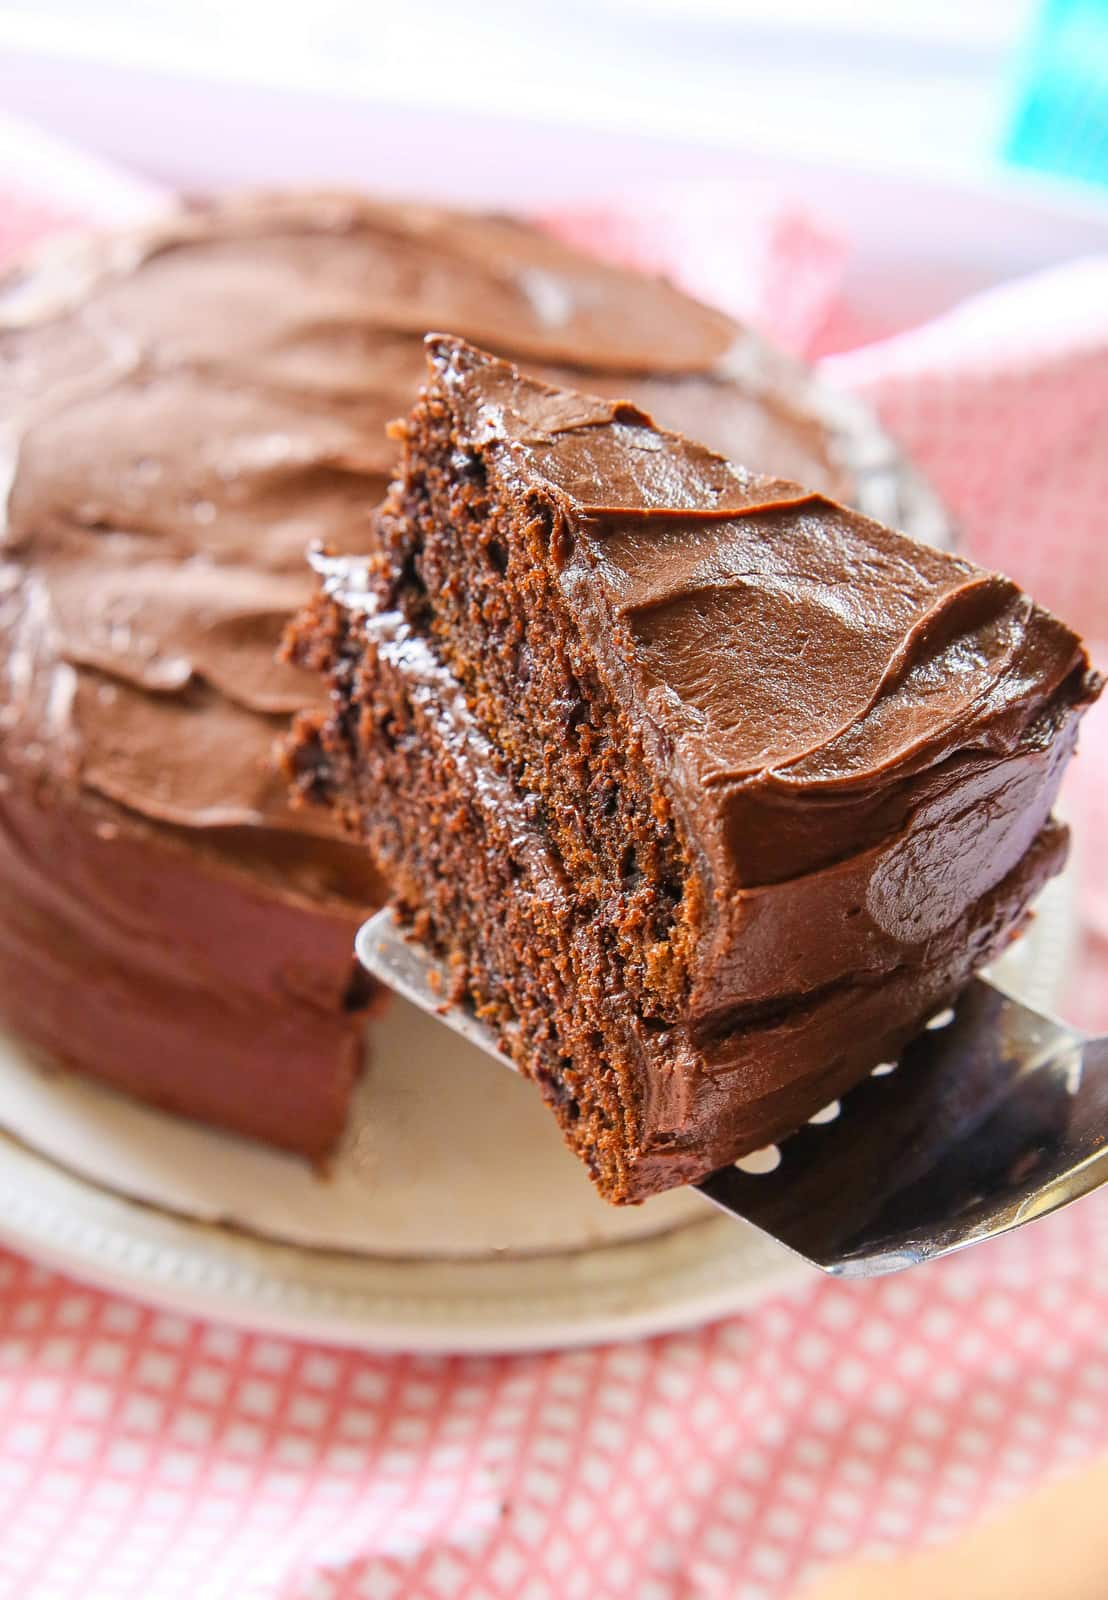 Hershey's Perfectly Chocolate Cake - The Girl Who Ate Everything